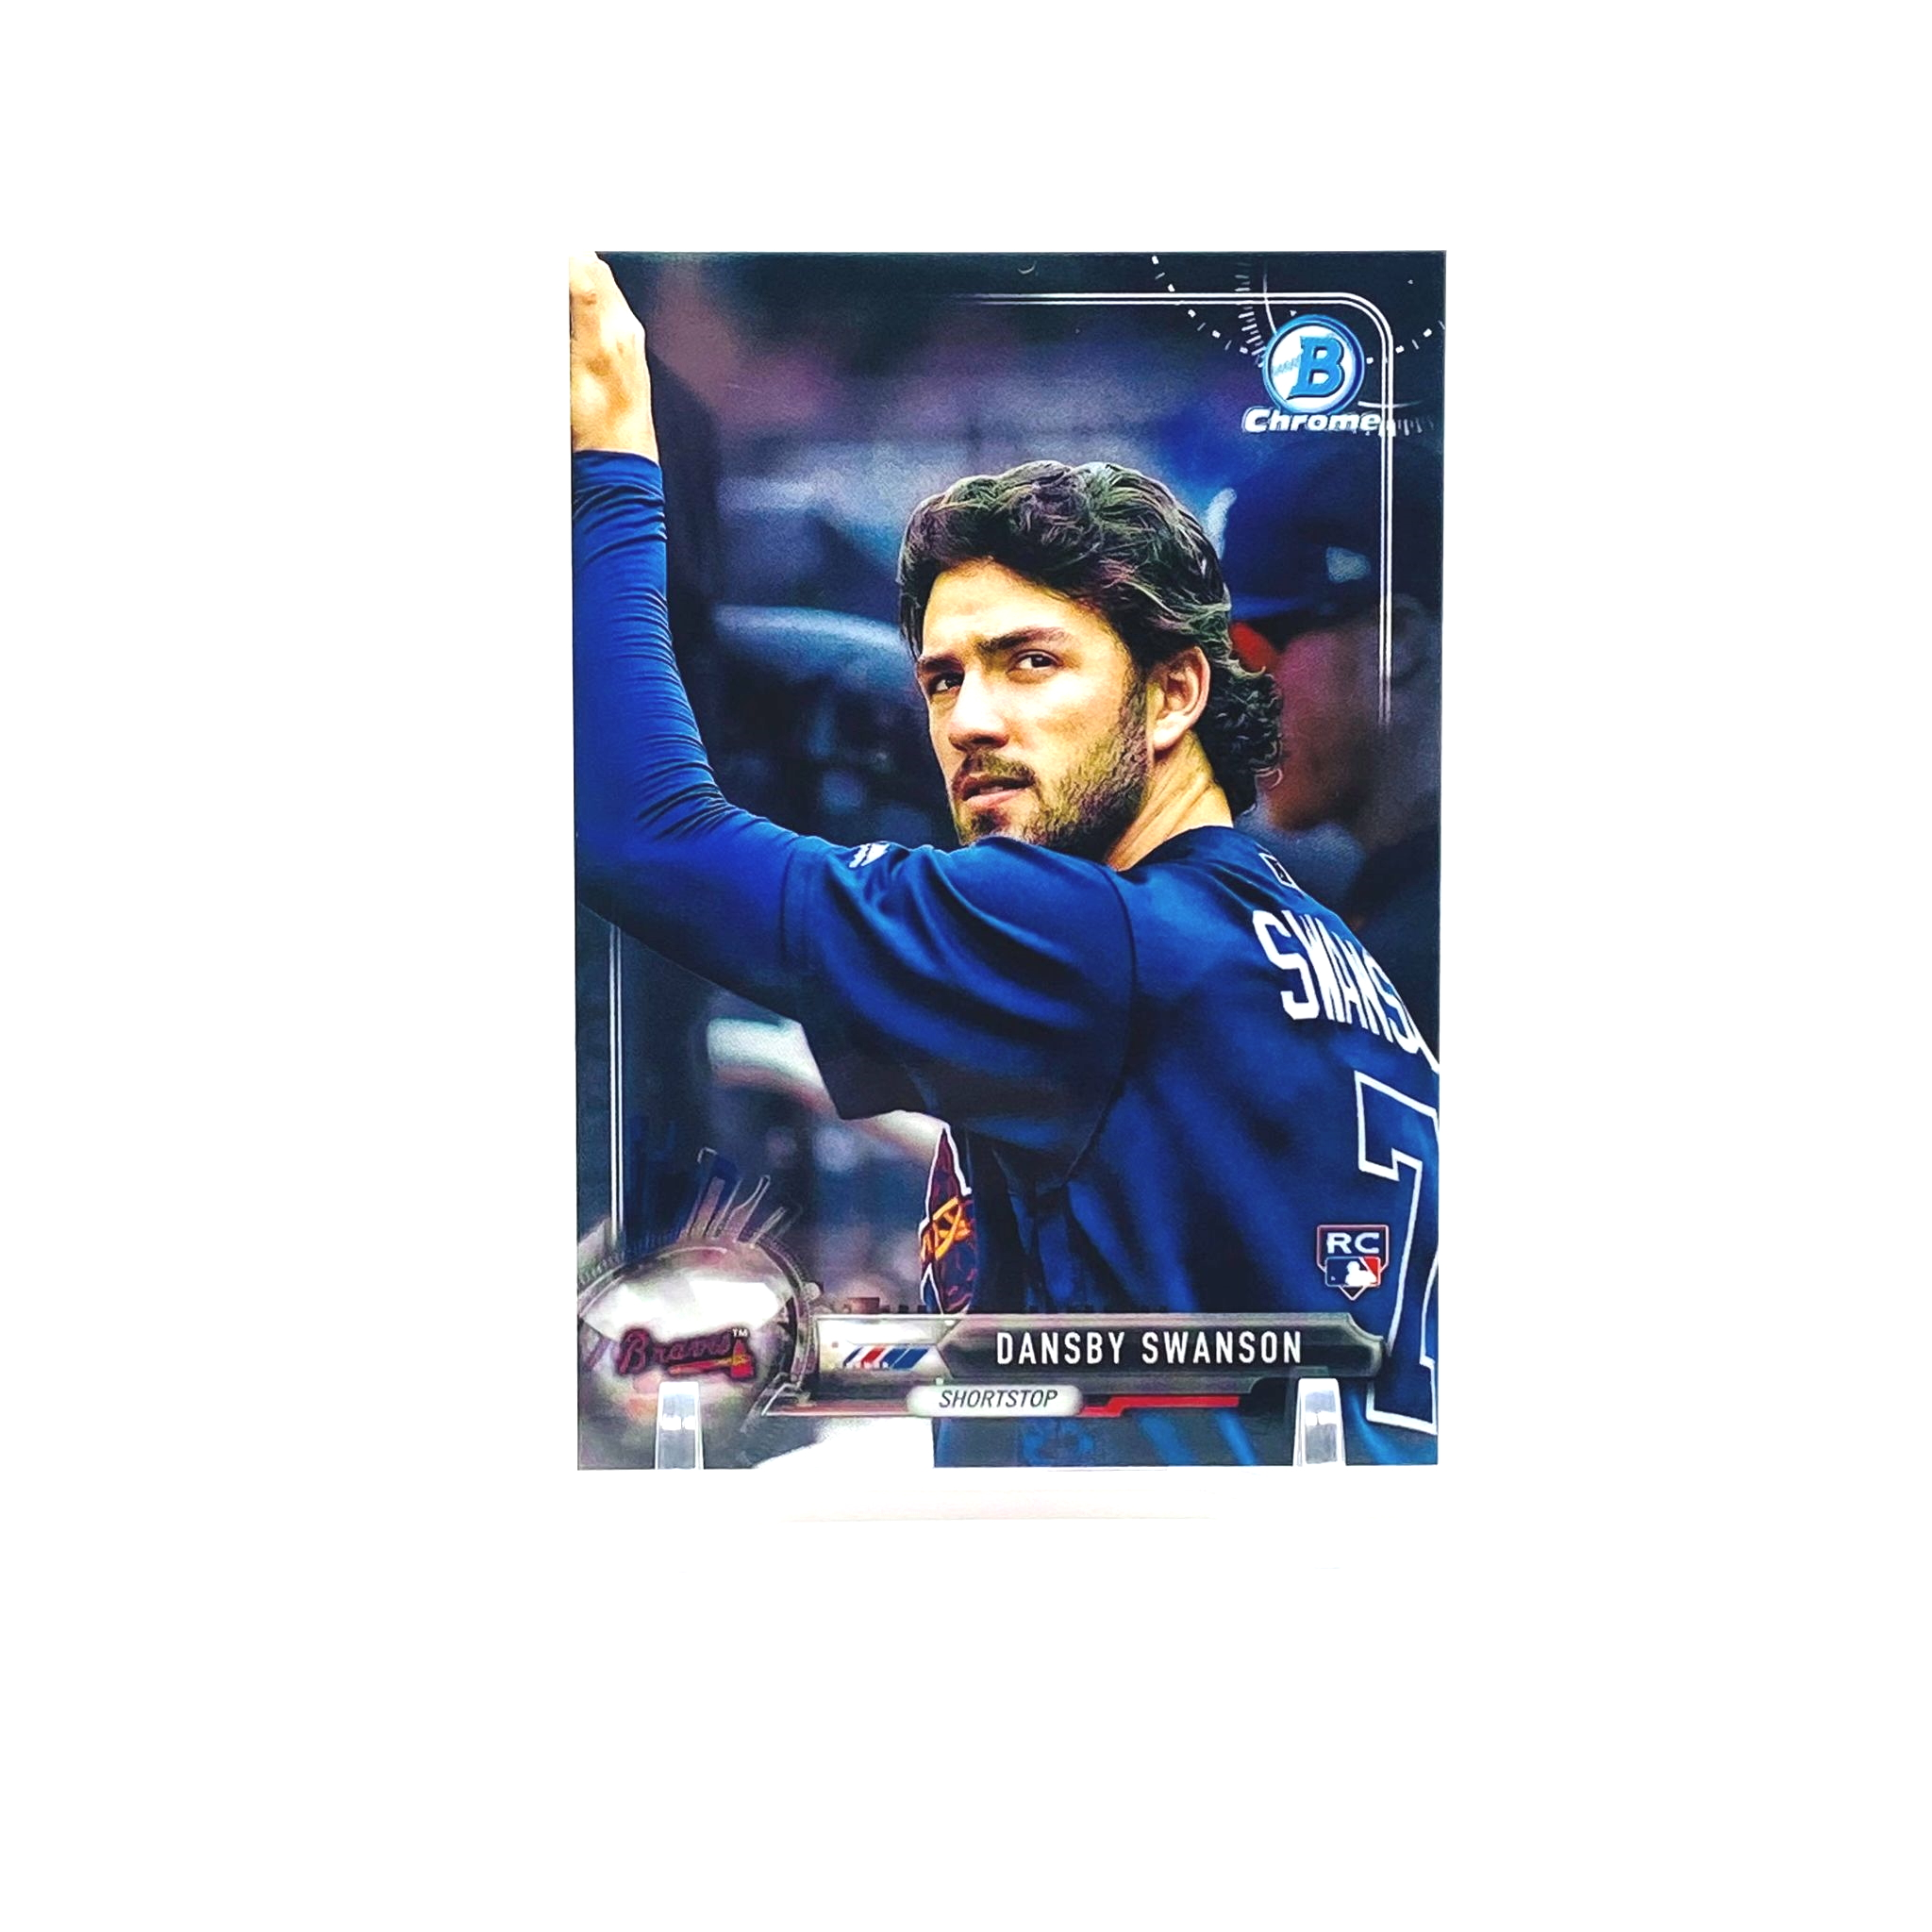 2017 Bowman Chrome Dansby Swanson Photo Variation Rookie Card Atlanta Braves